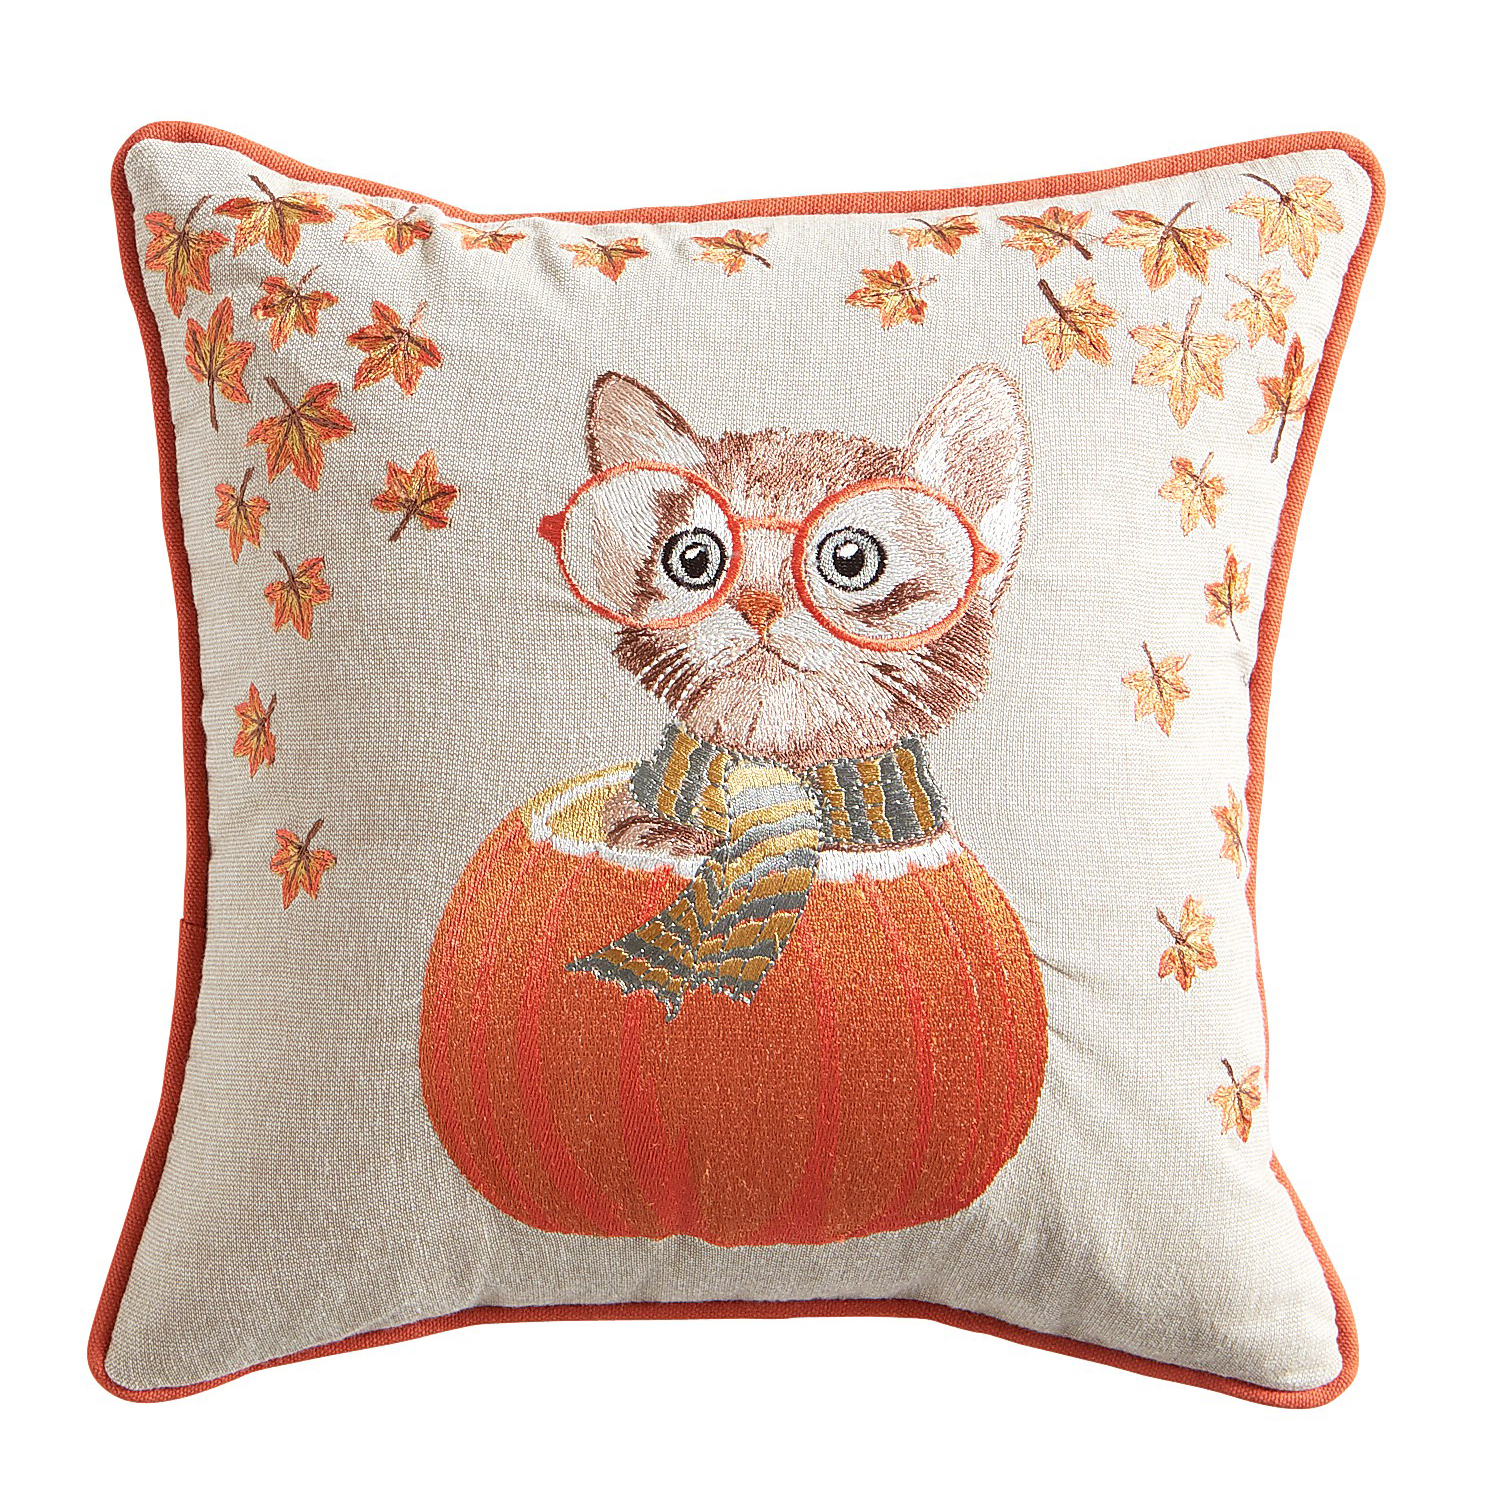 Cat in Pumpkin Pillow